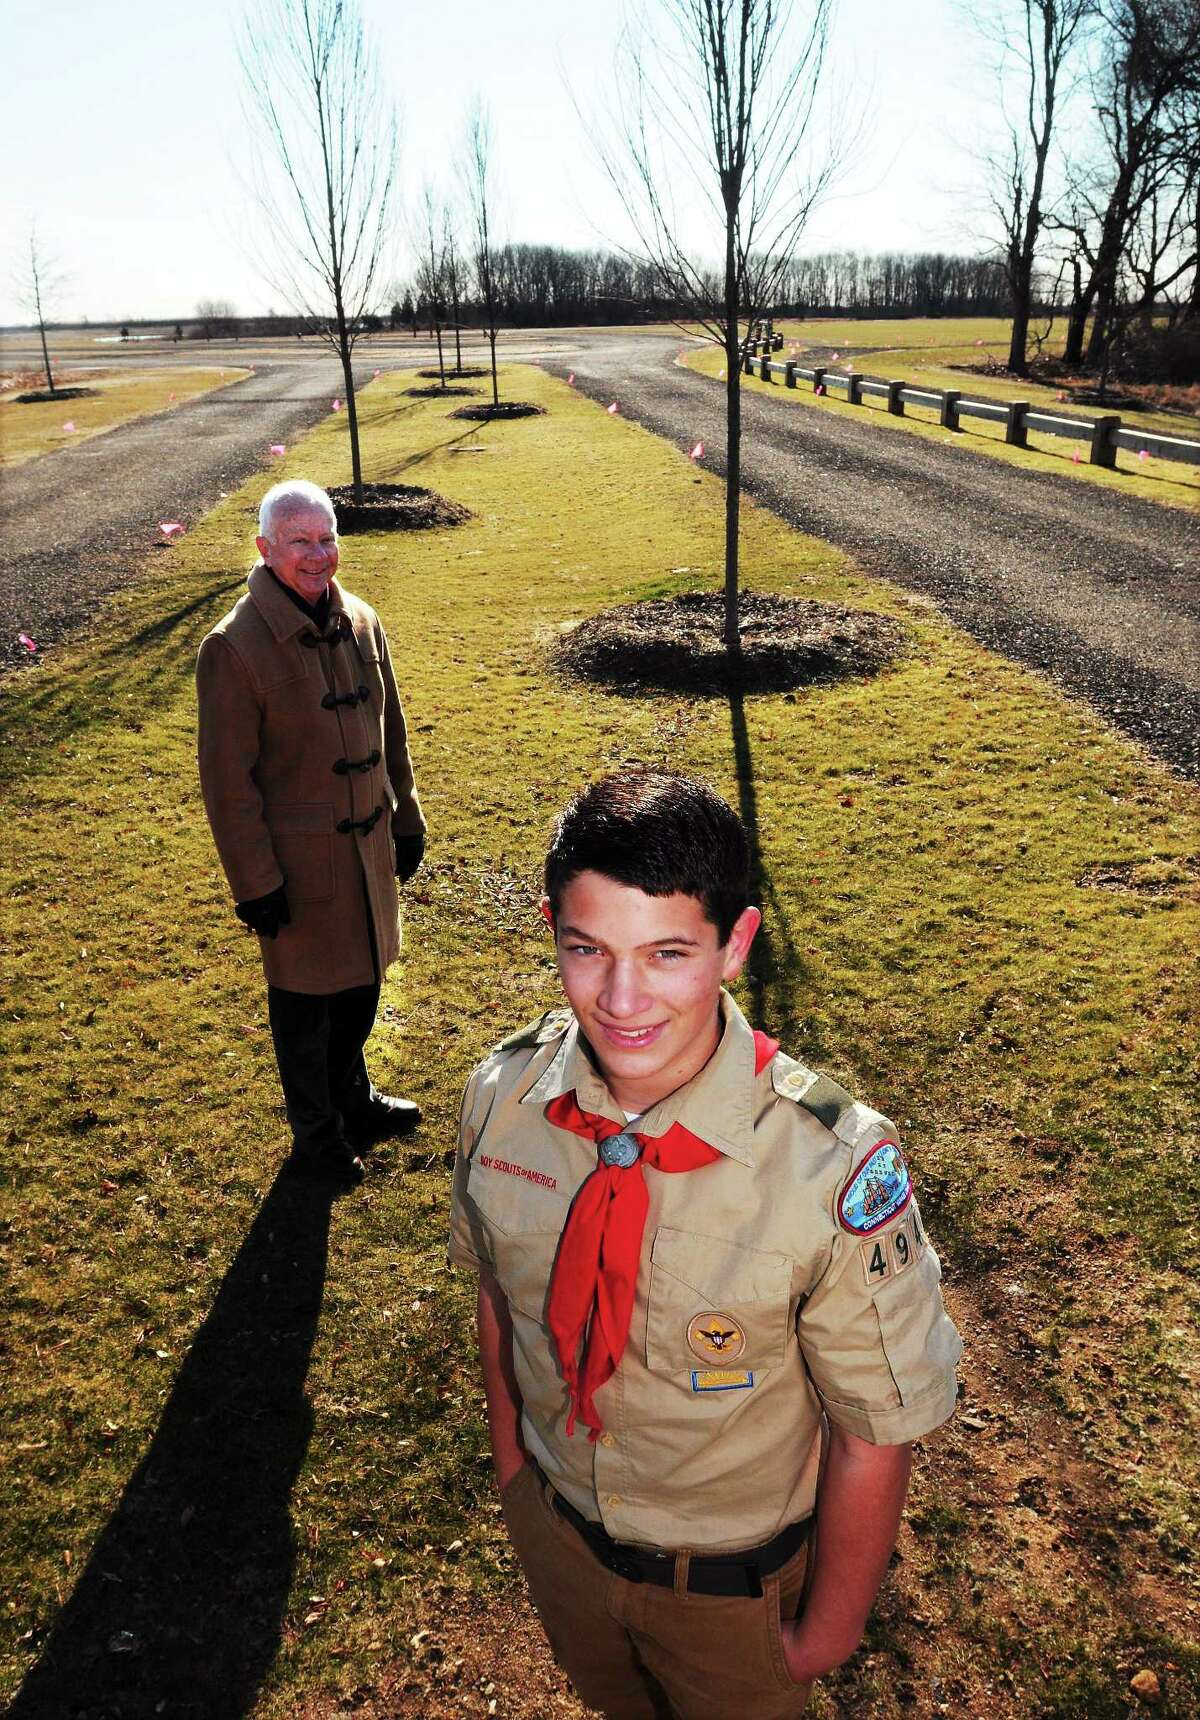 Nate Rogers' Eagle Scout project is to gather ideas for the renaming of Constitution Park in Madison. At left is Madison First Selectman Fillmore McPherson.